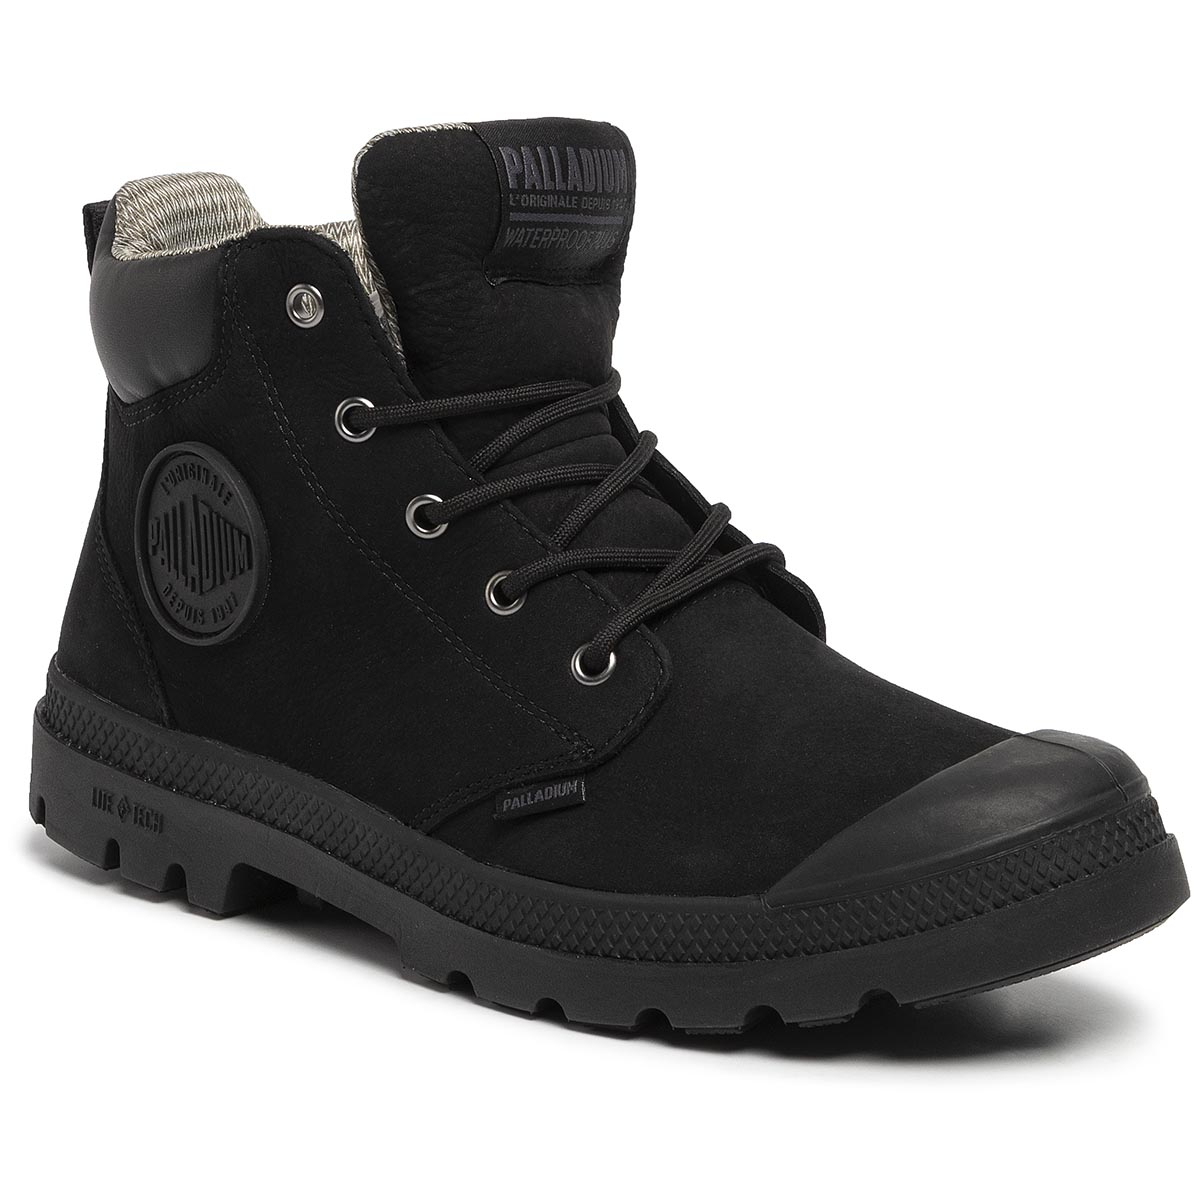 Trappers PALLADIUM - Pampa Lite+ Cuff Wp 76464-008-M Black